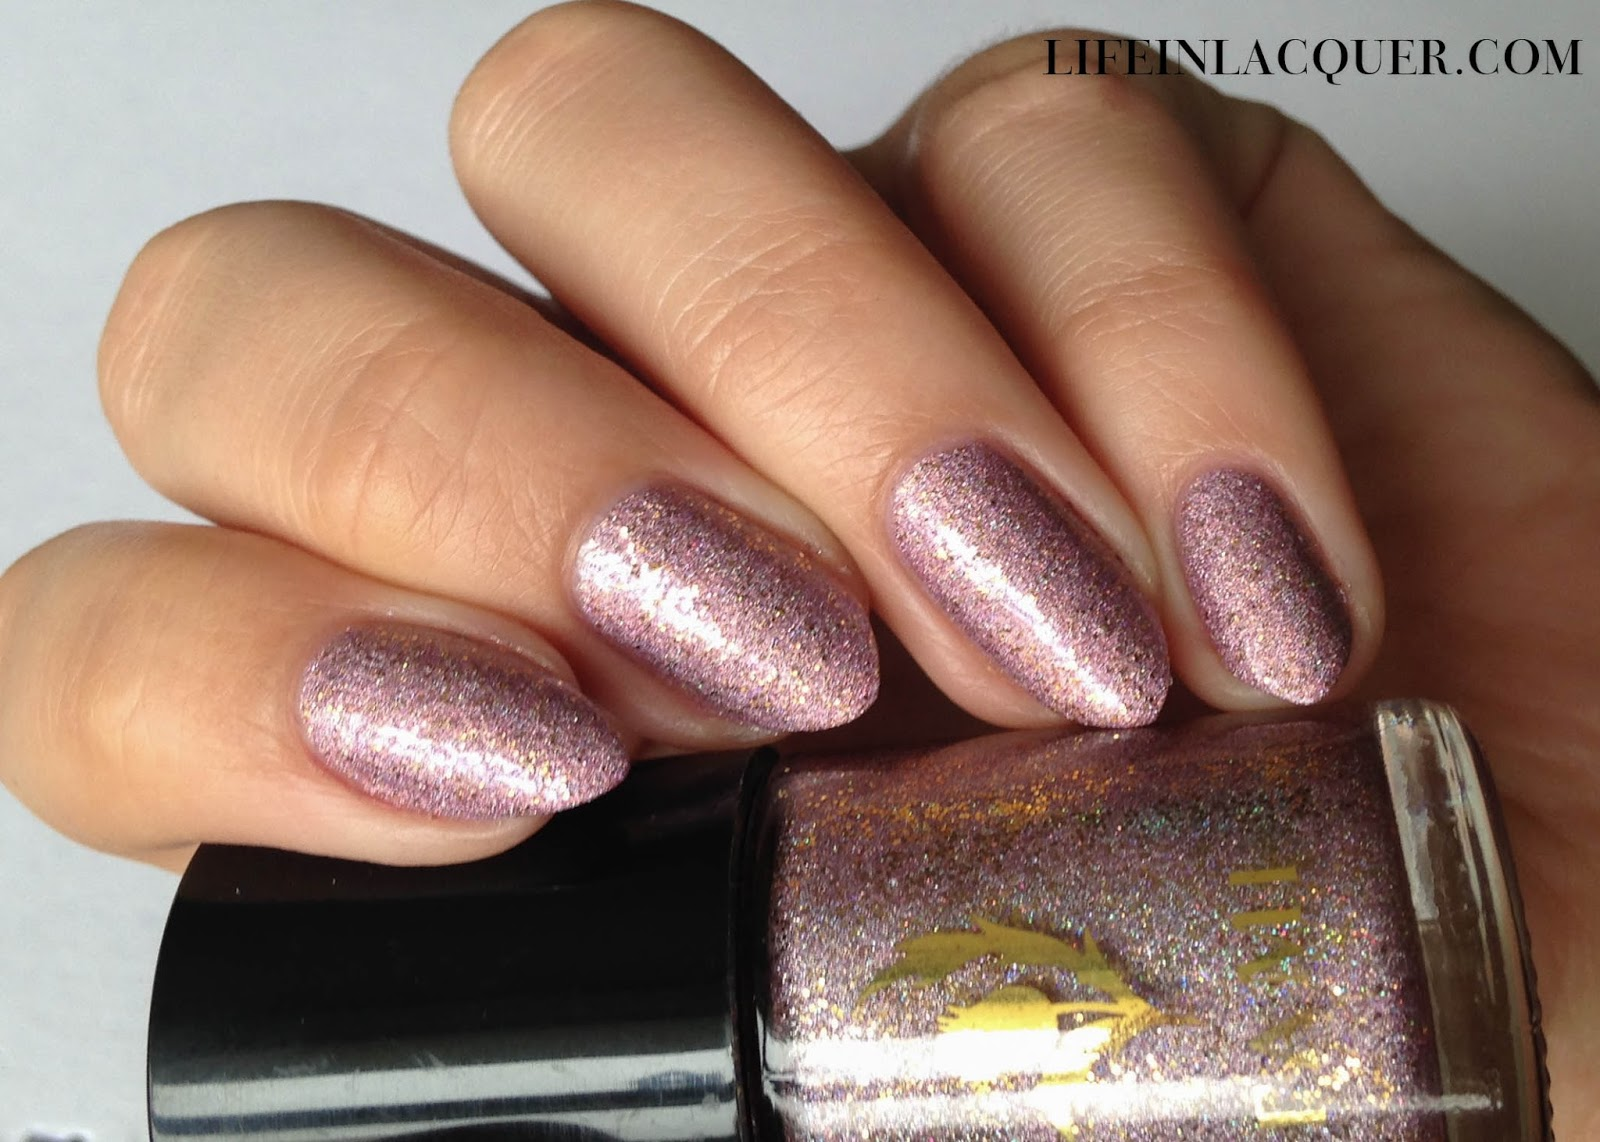 Swatch of Gleneagles Glamour by Tami Beauty scottish indie